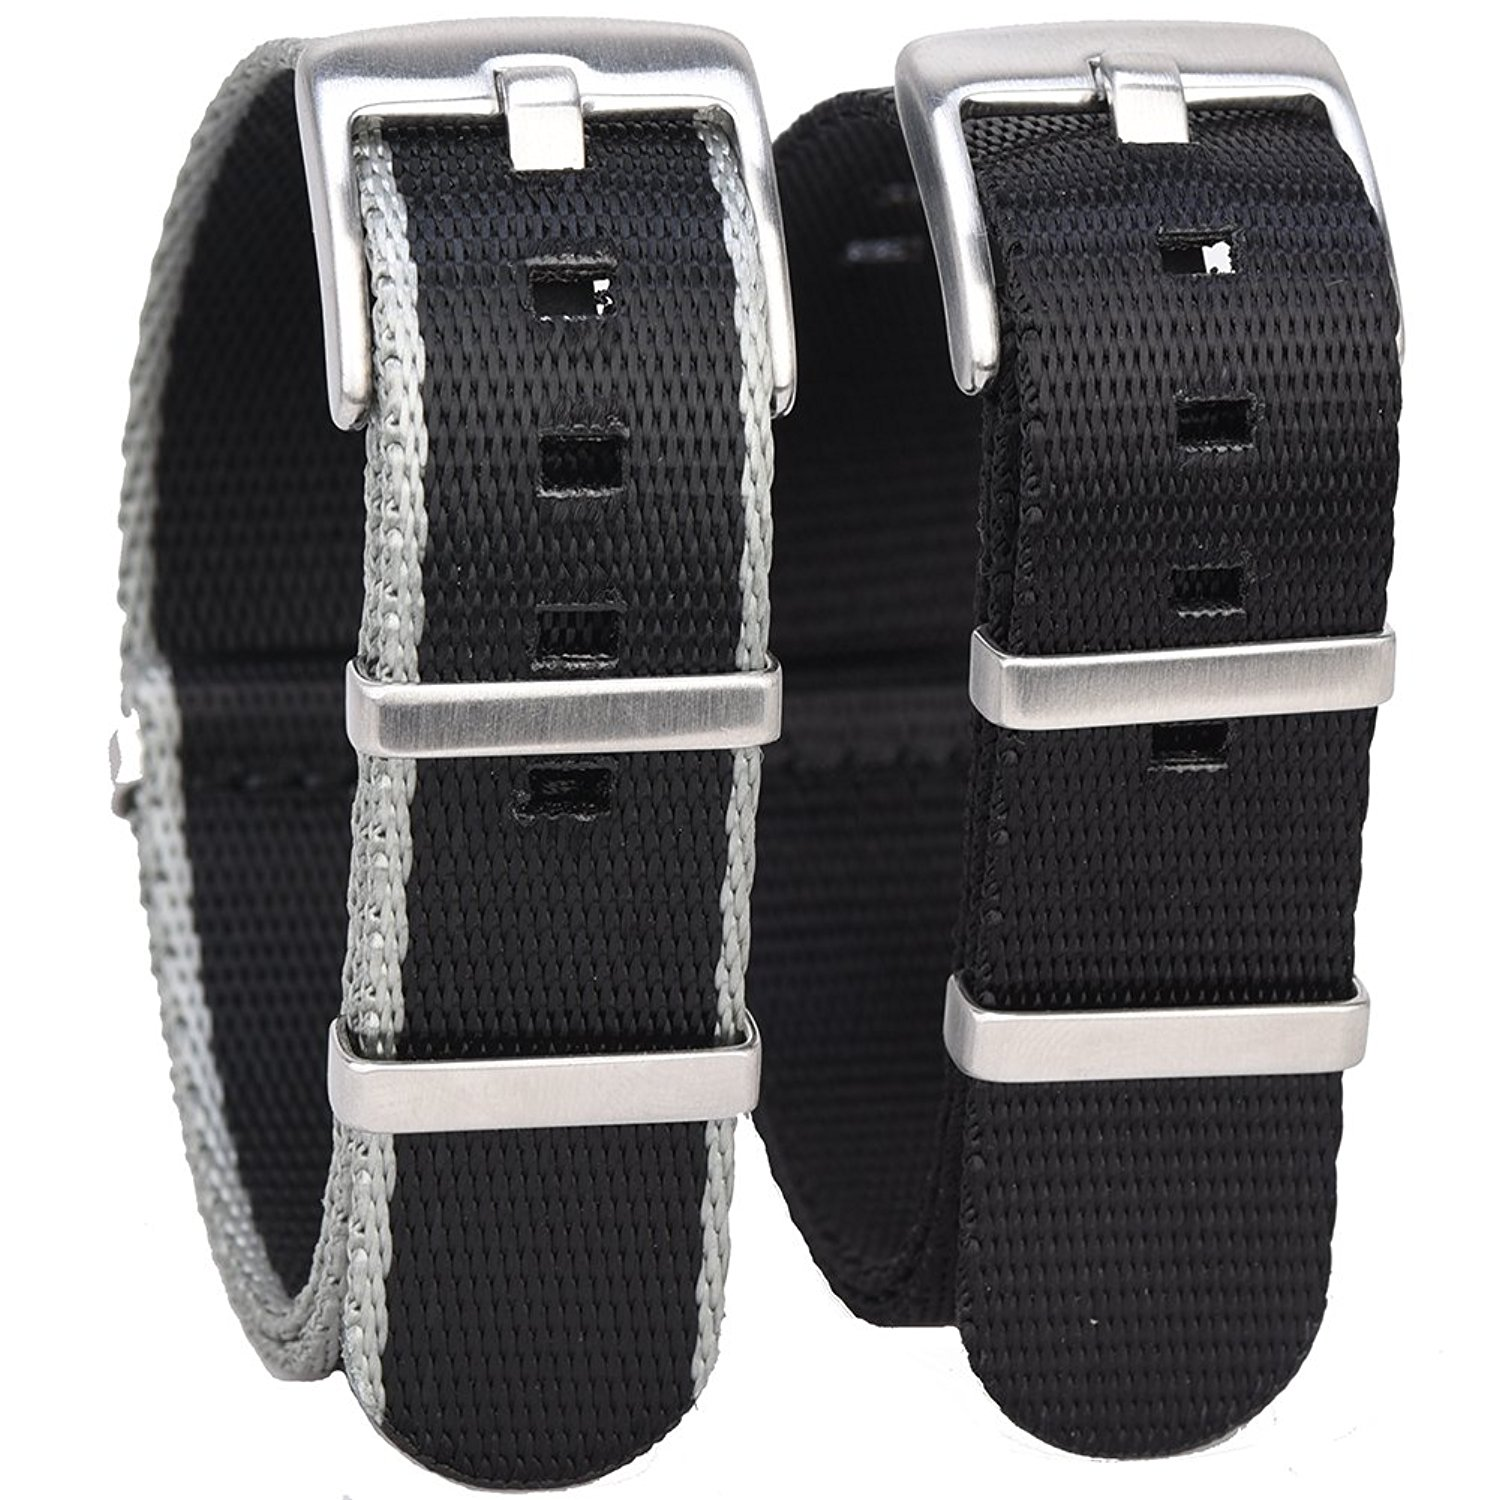 Randon Watch Bands NATO Strap Watch straps Premium Ballistic Nylon Strap Stainless Steel Buckle